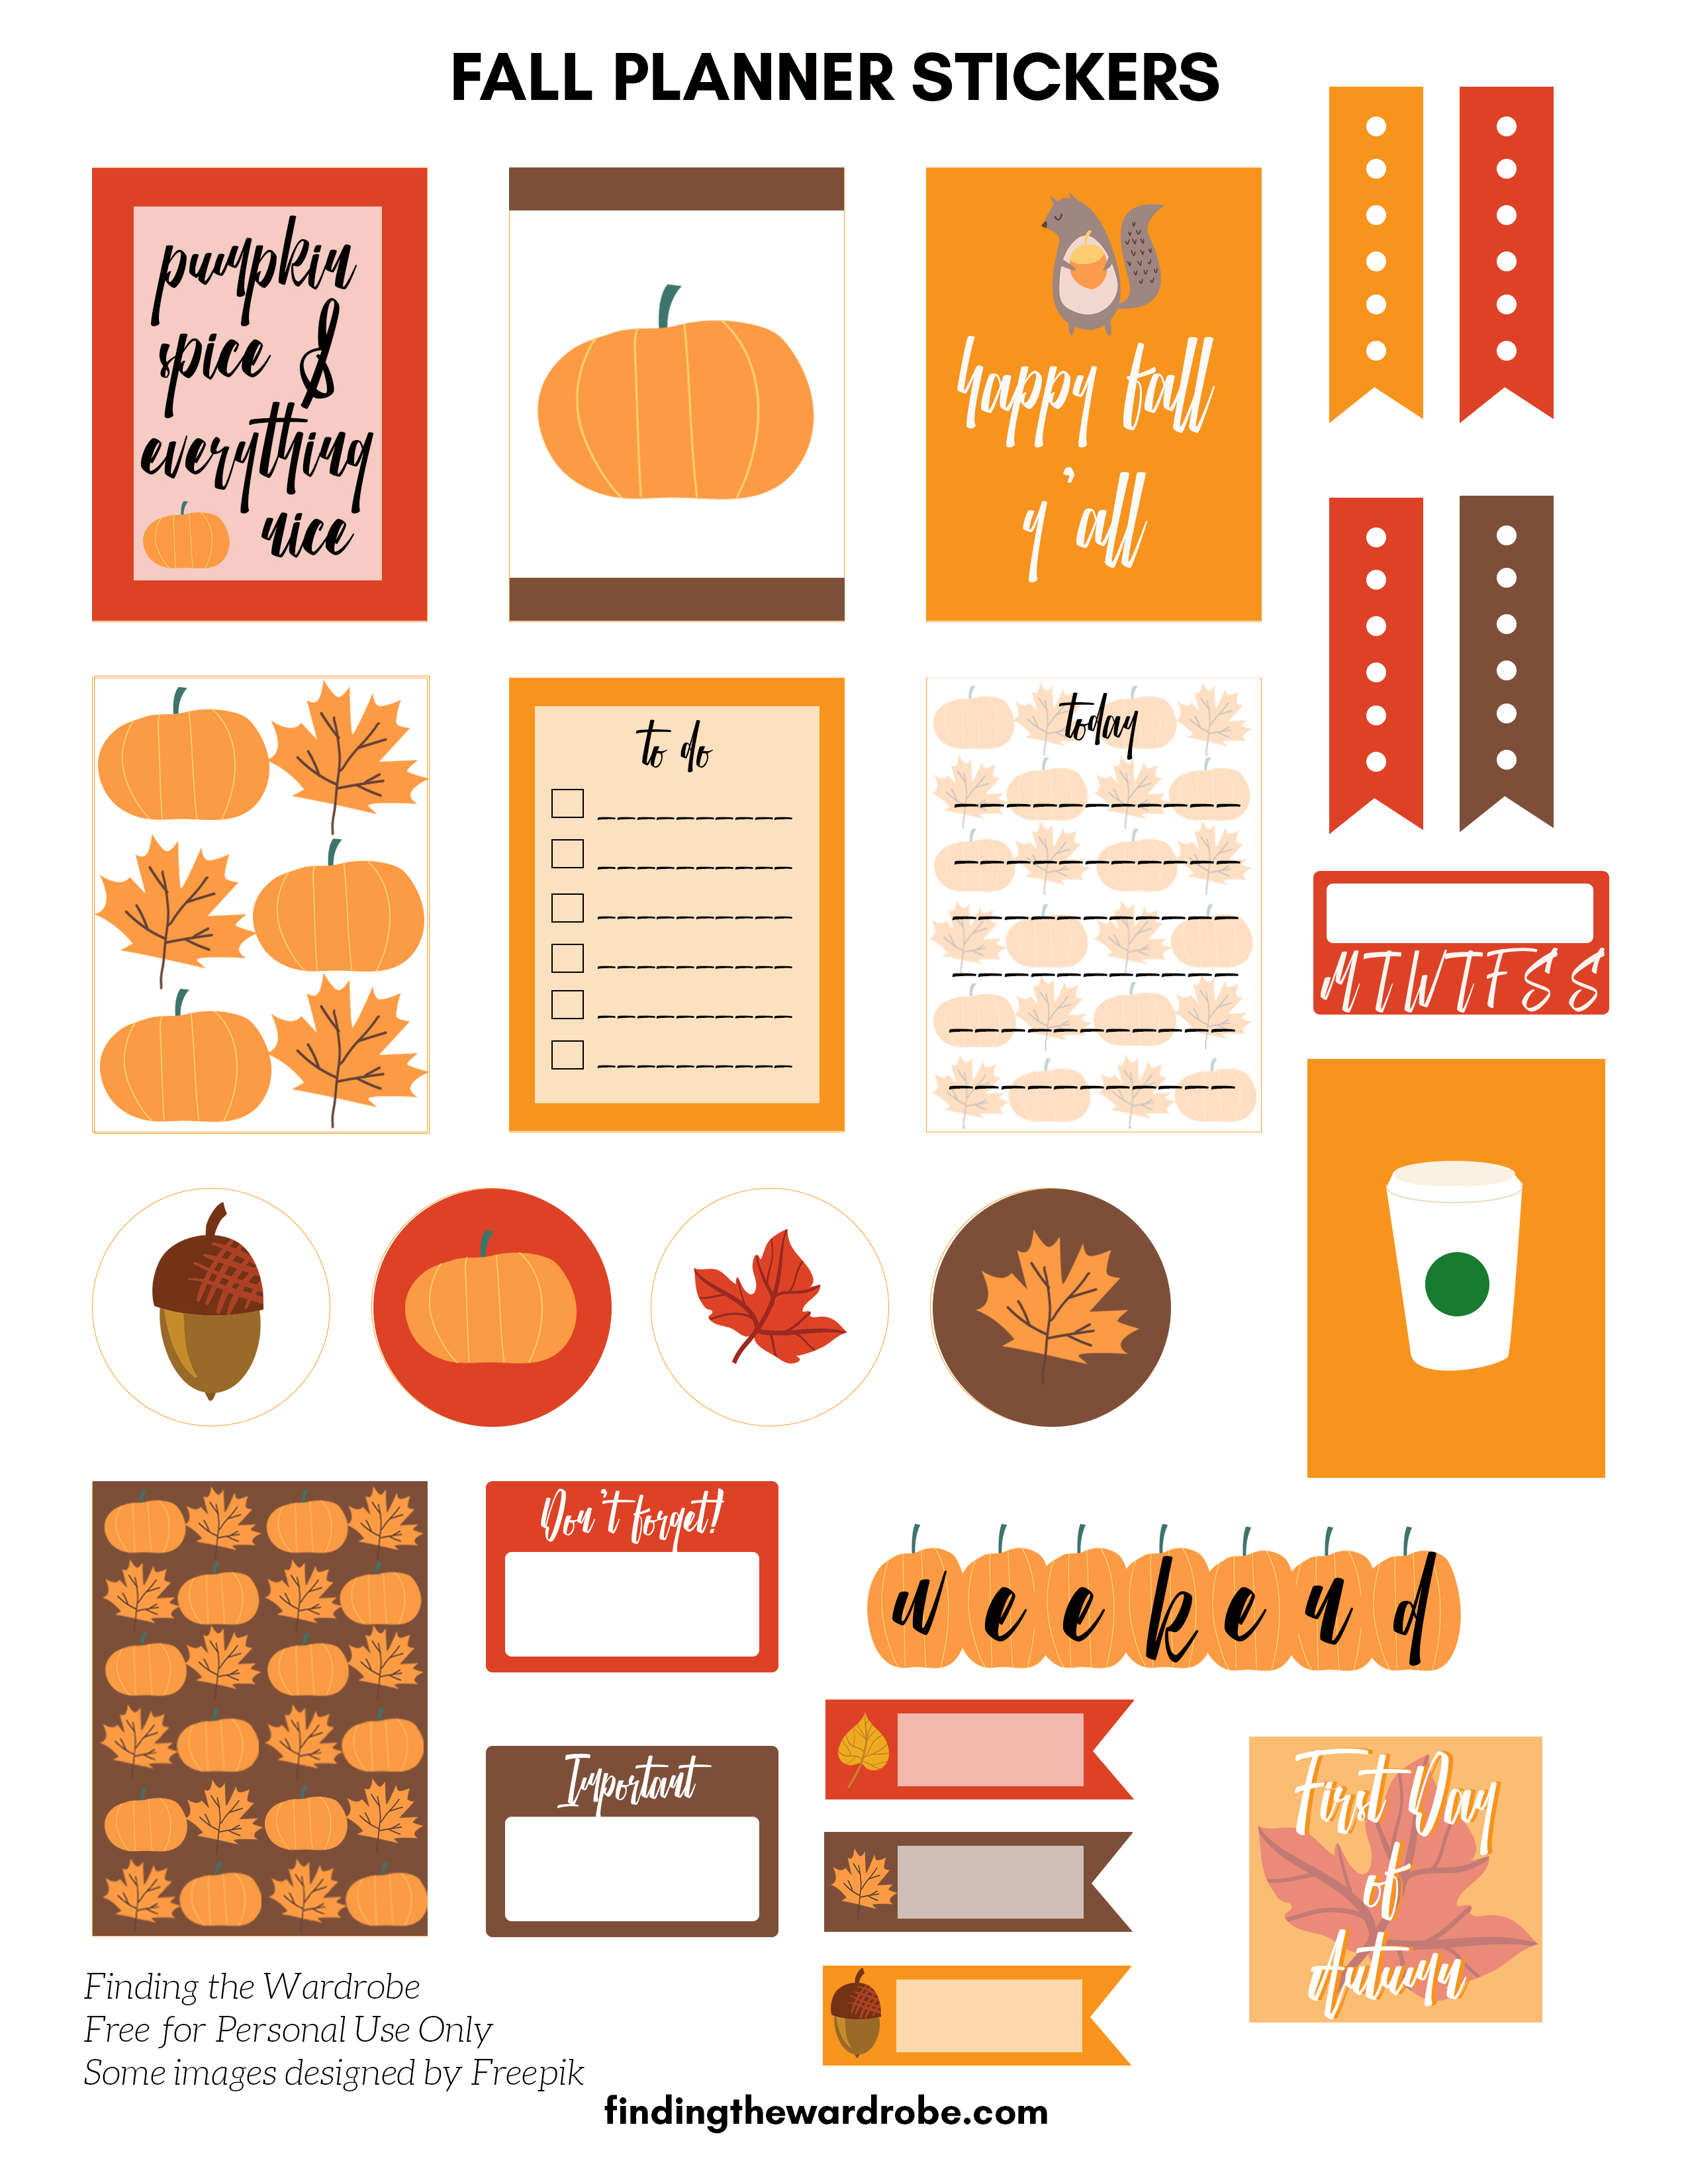 Free Printable - Fall Planner Stickers - Finding the Wardrobe